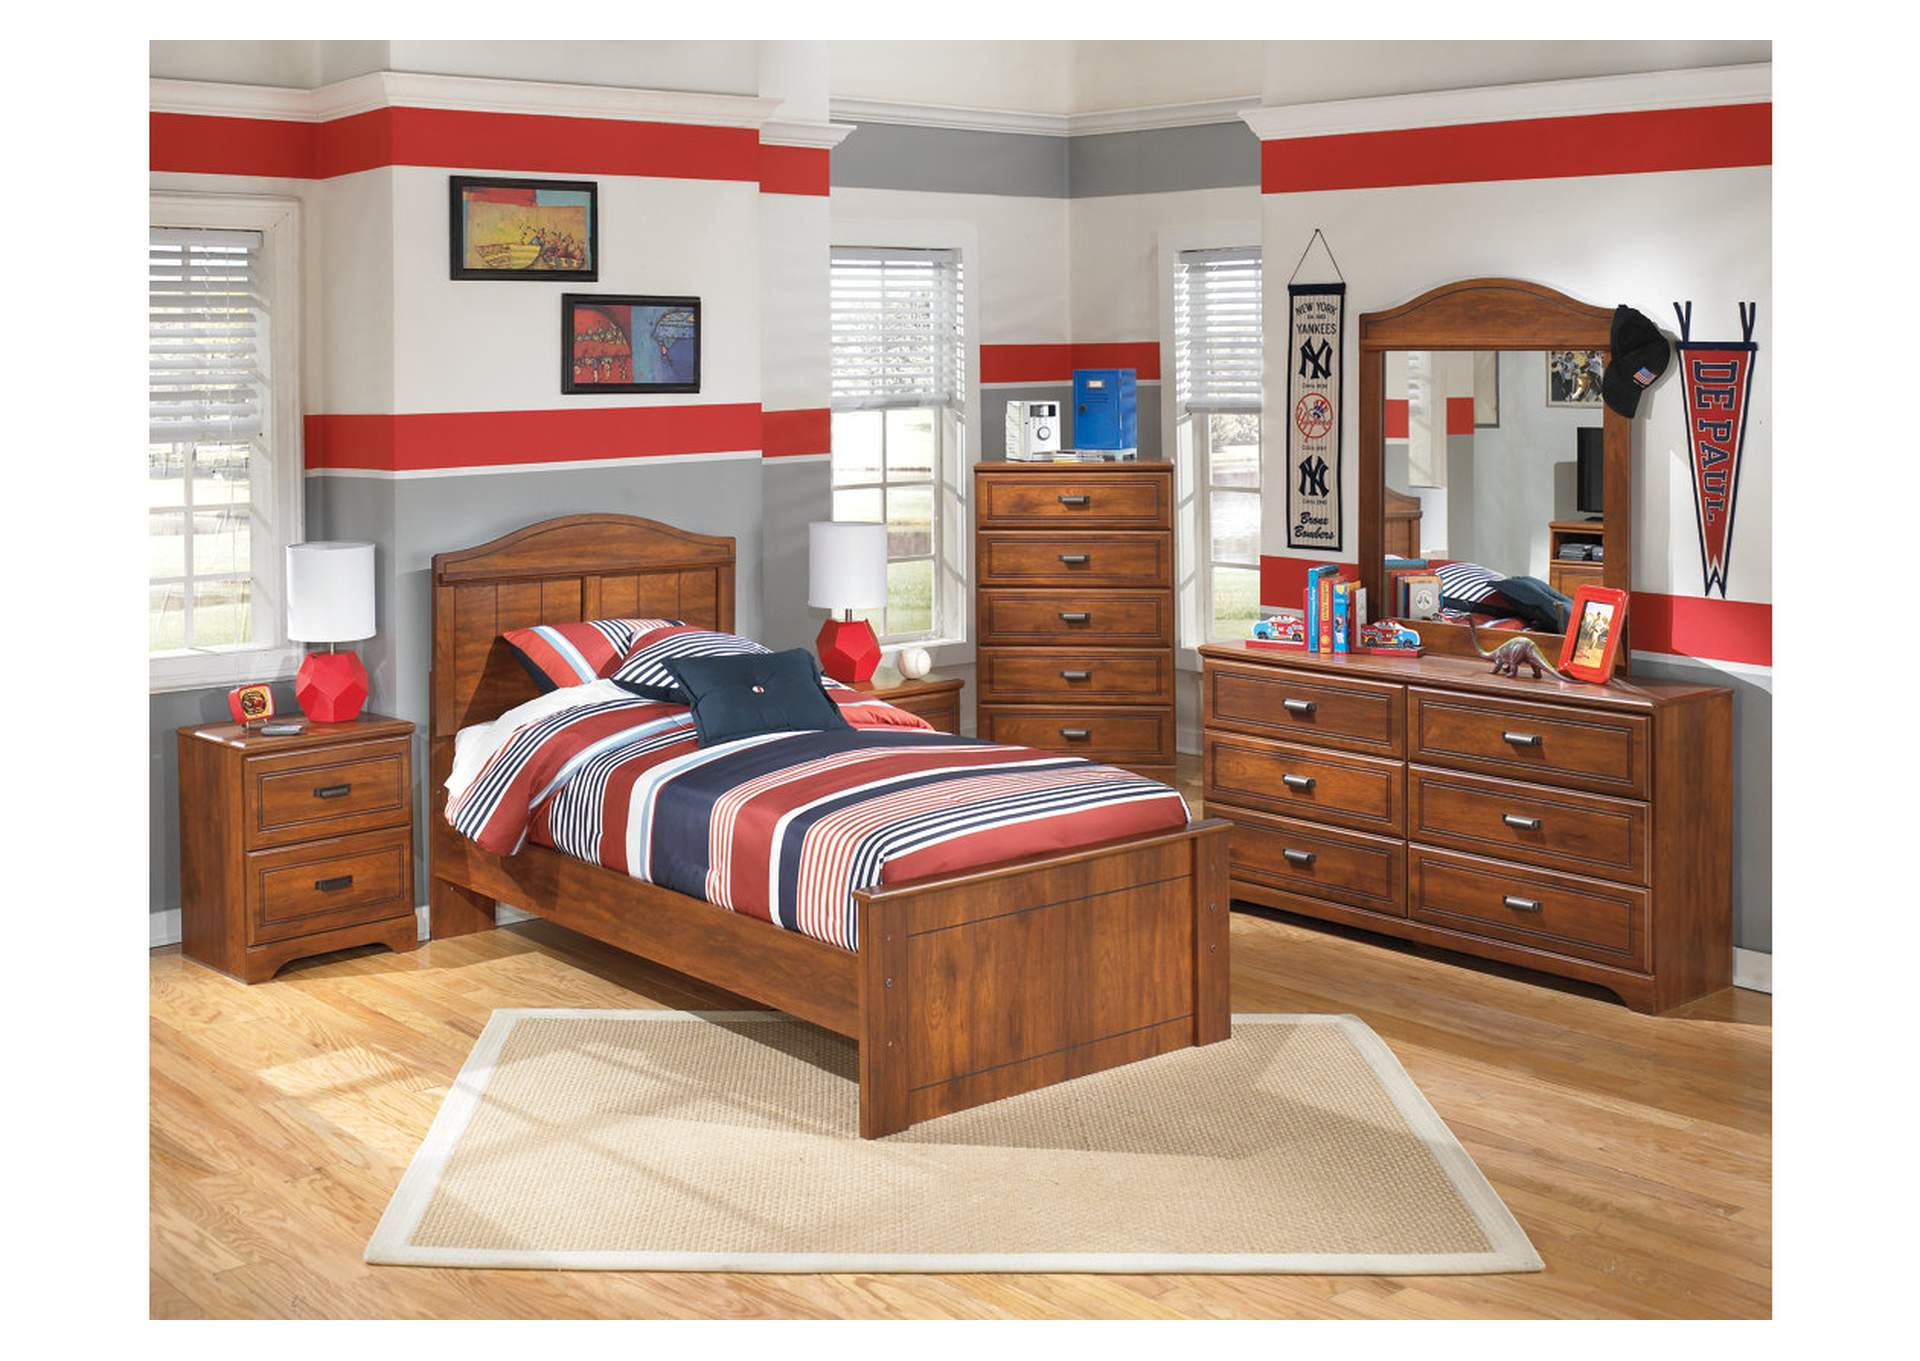 Barchan Twin Panel Bed w/Dresser, Mirror & Nightstand,Signature Design by Ashley